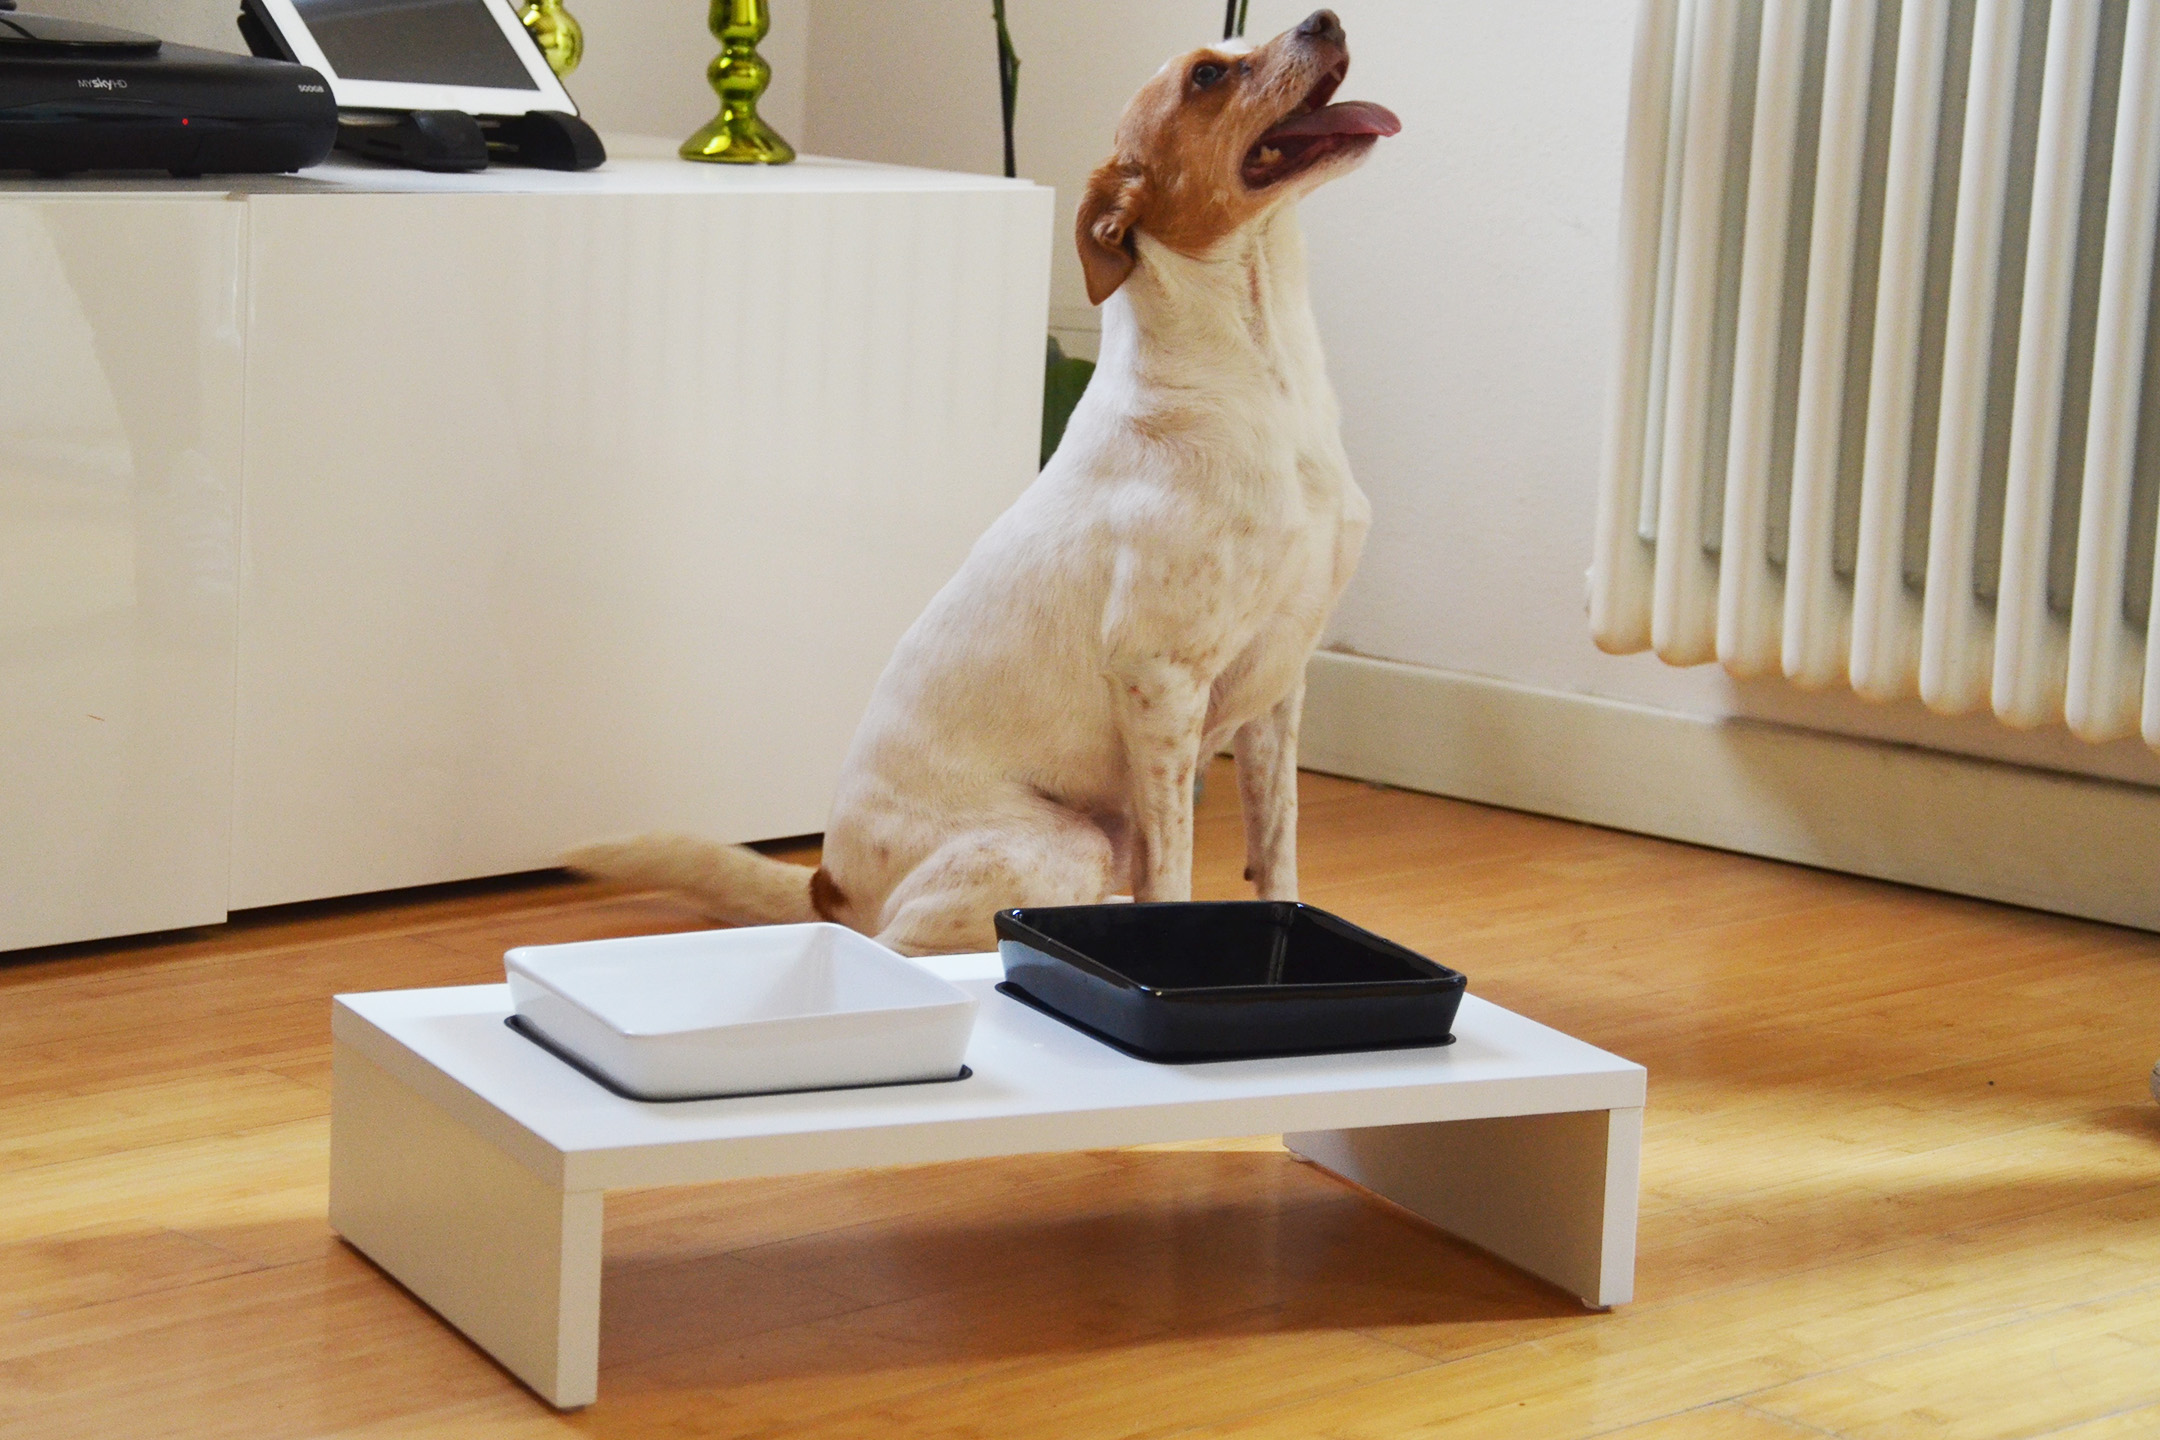 small dog with ferplast maki model dog bowls